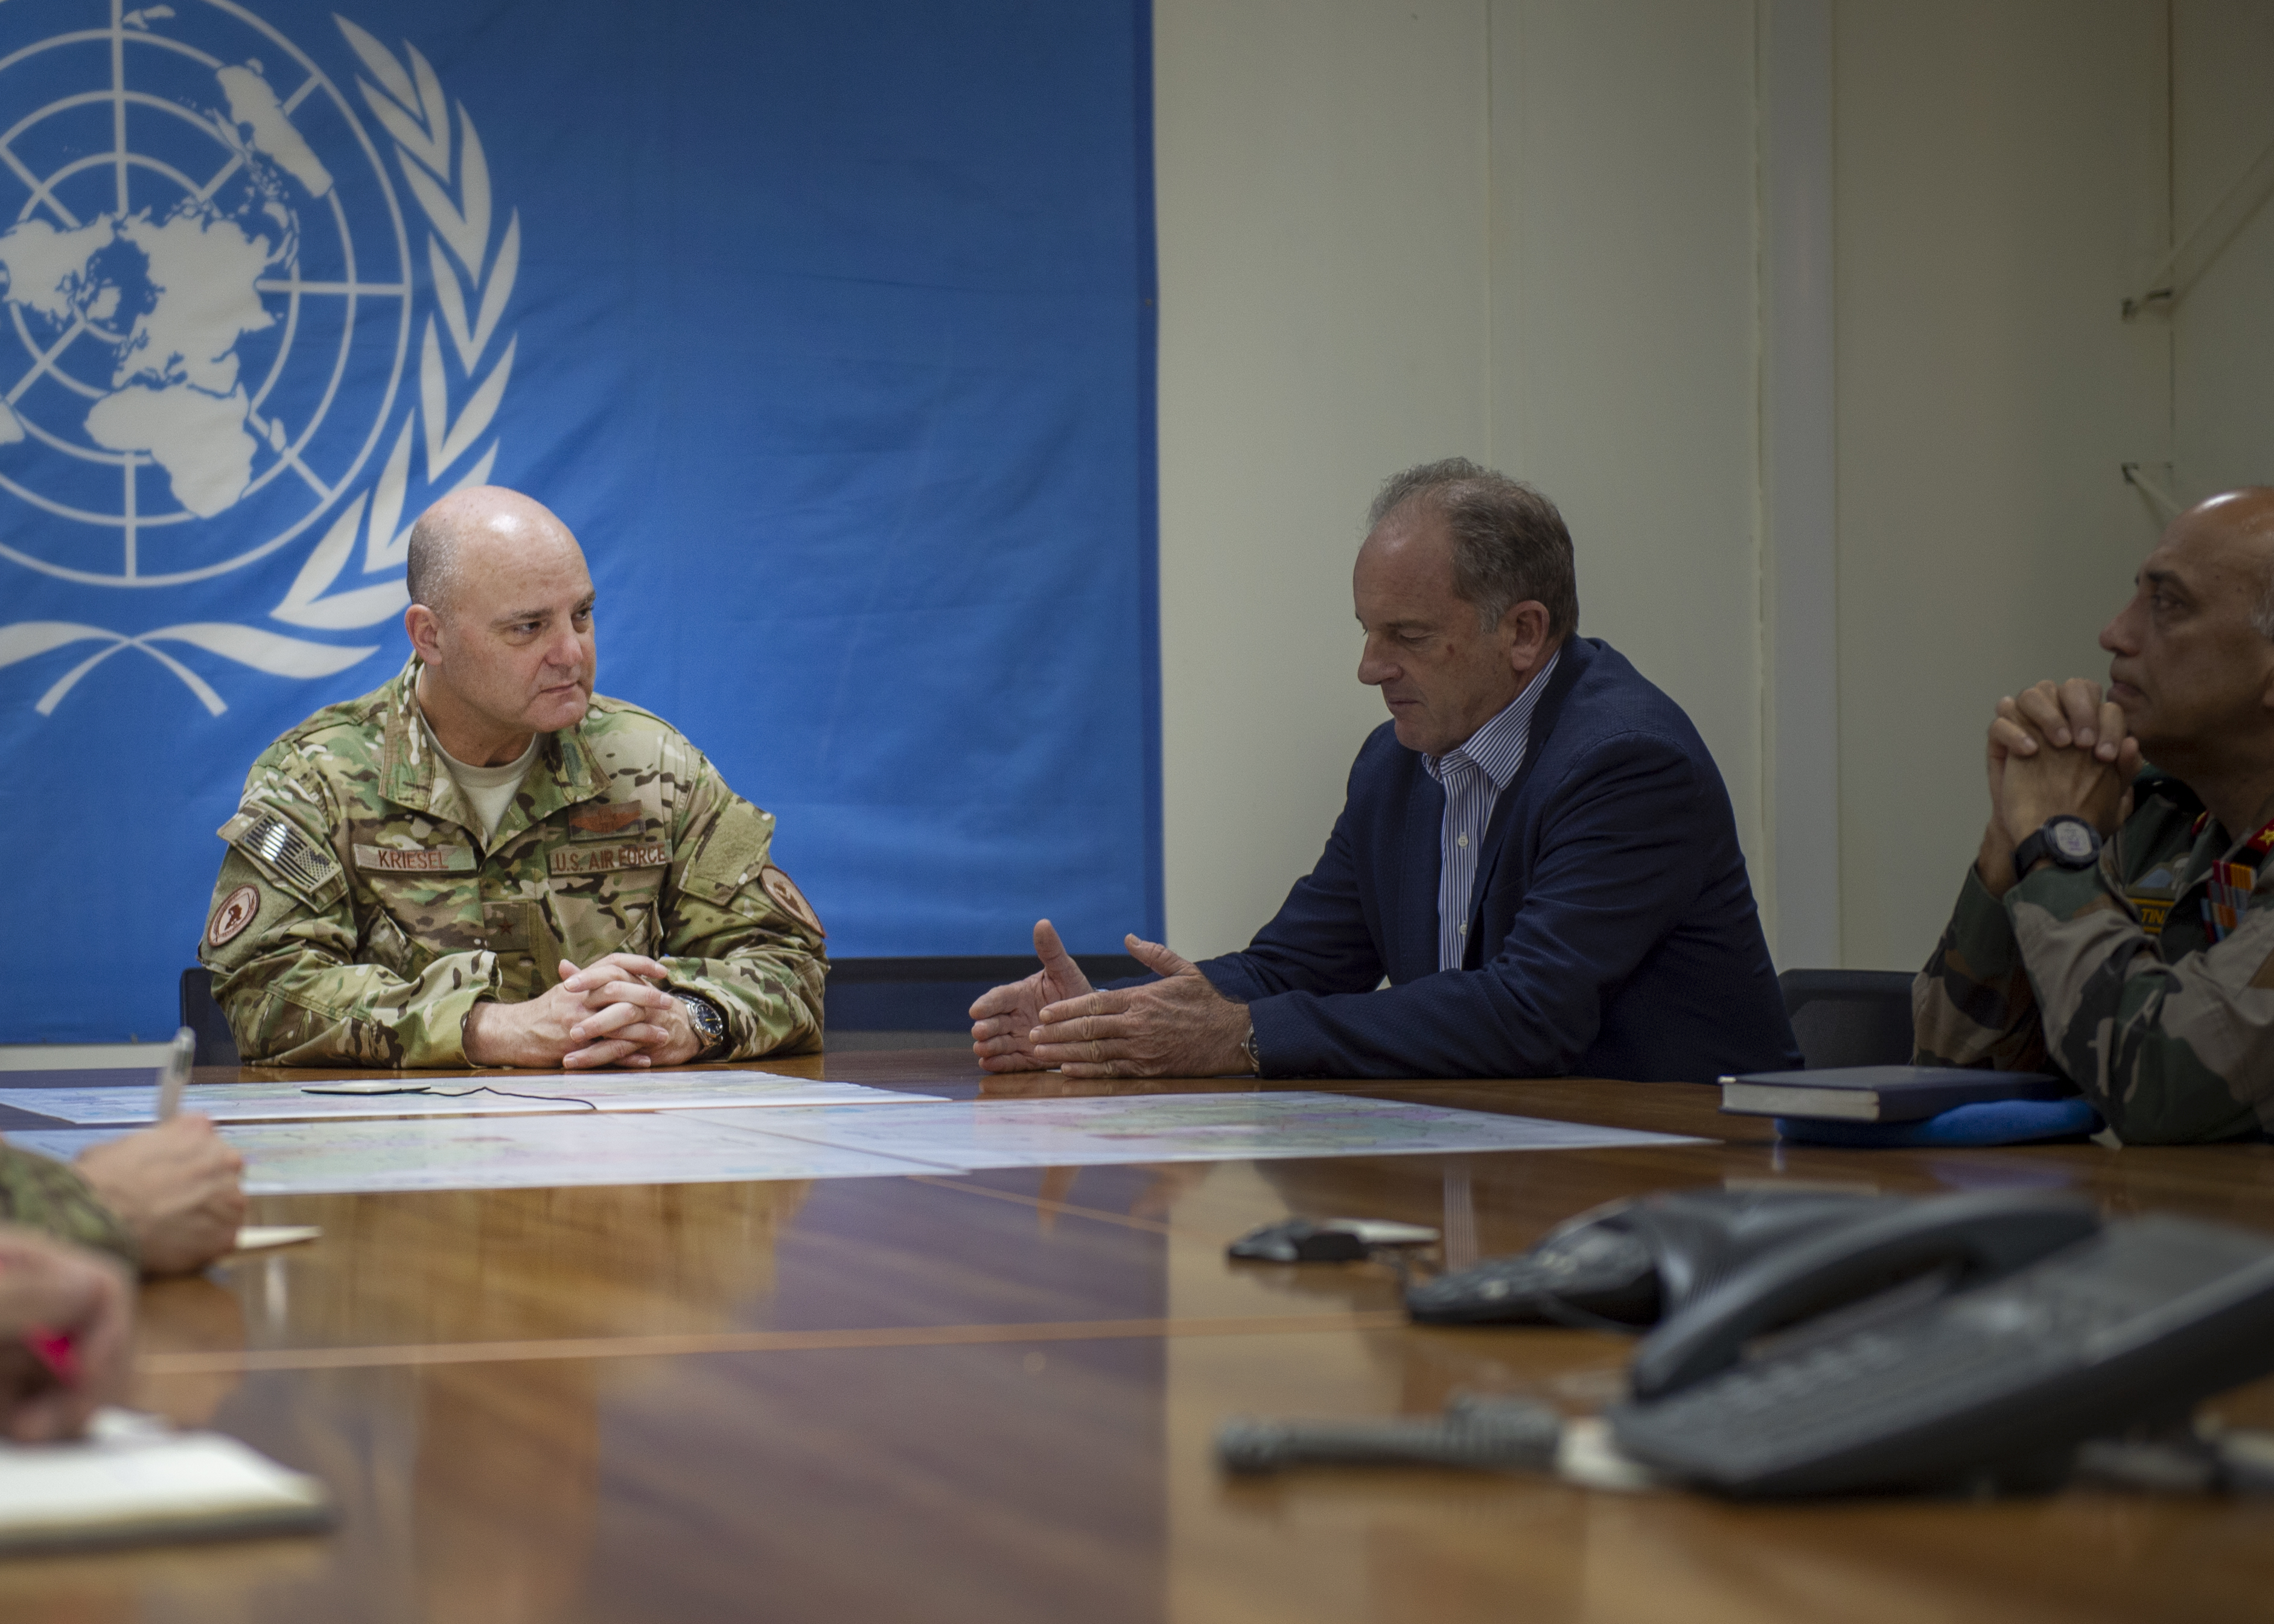 U.S. Air Force Brig. Gen. James R. Kriesel, deputy commanding general of Combined Joint Task Force-Horn of Africa (CJTF-HOA), meets with David Shearer, special representative of the Secretary-General for South Sudan and head of the United Nations Mission in South Sudan (UNMISS), in Juba, South Sudan, Aug. 15, 2019. UNMISS has 14,000 peacekeepers, police, security and civilian personnel from at least 60 different countries working to deter violence against civilians by providing a safe and secure environment for South Sudanese people. (U.S. Air Force Photo by Senior Airman Codie Trimble)